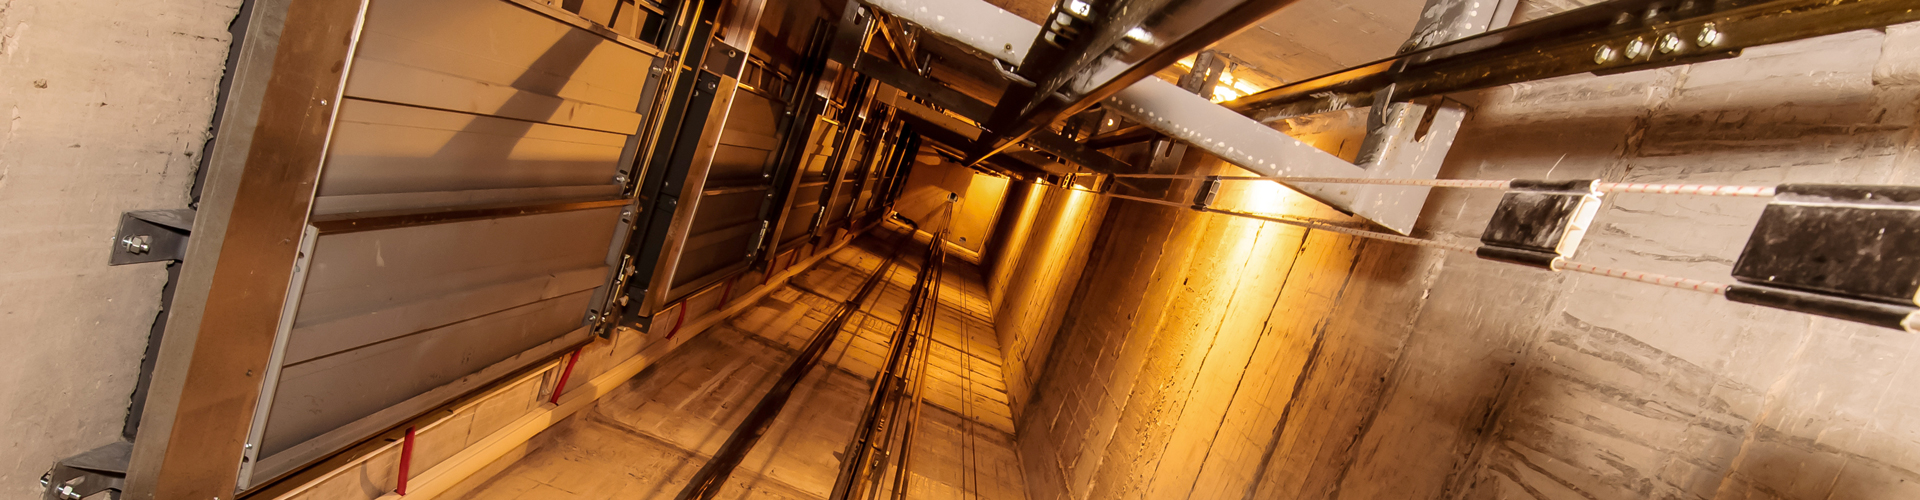 Elevator shaft - MCI ss a recognized leader in the production of transformers and custom magnetics for elevator manufacturers.